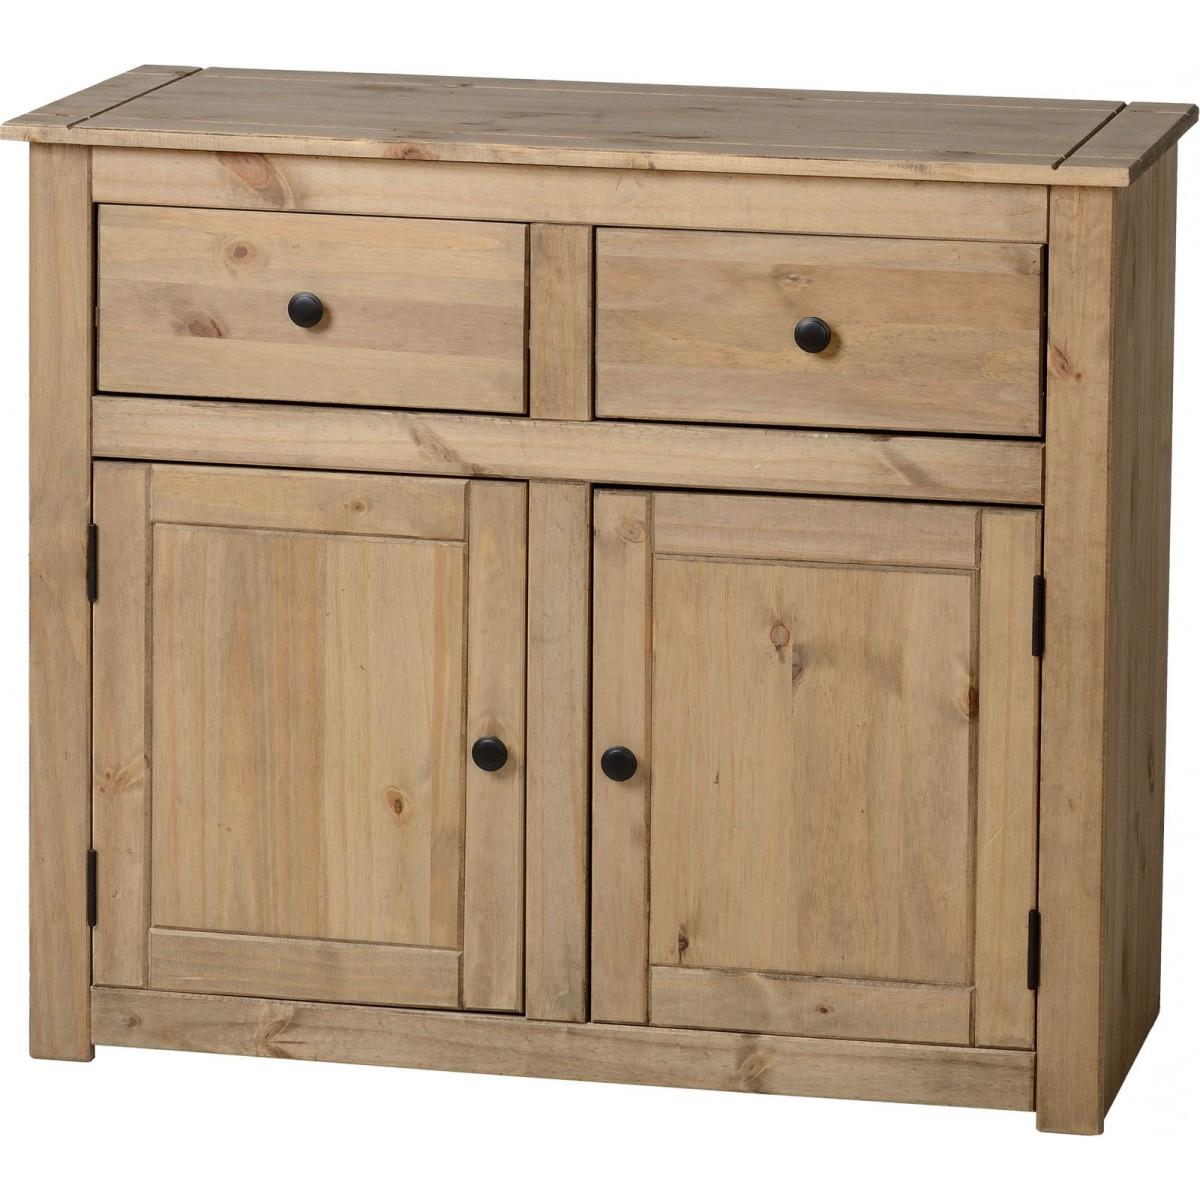 Famous Seconique Solid Waxed Oak Wood 2 Door 2 Drawer Sideboard For Natural Oak Wood 2 Door Sideboards (View 5 of 20)